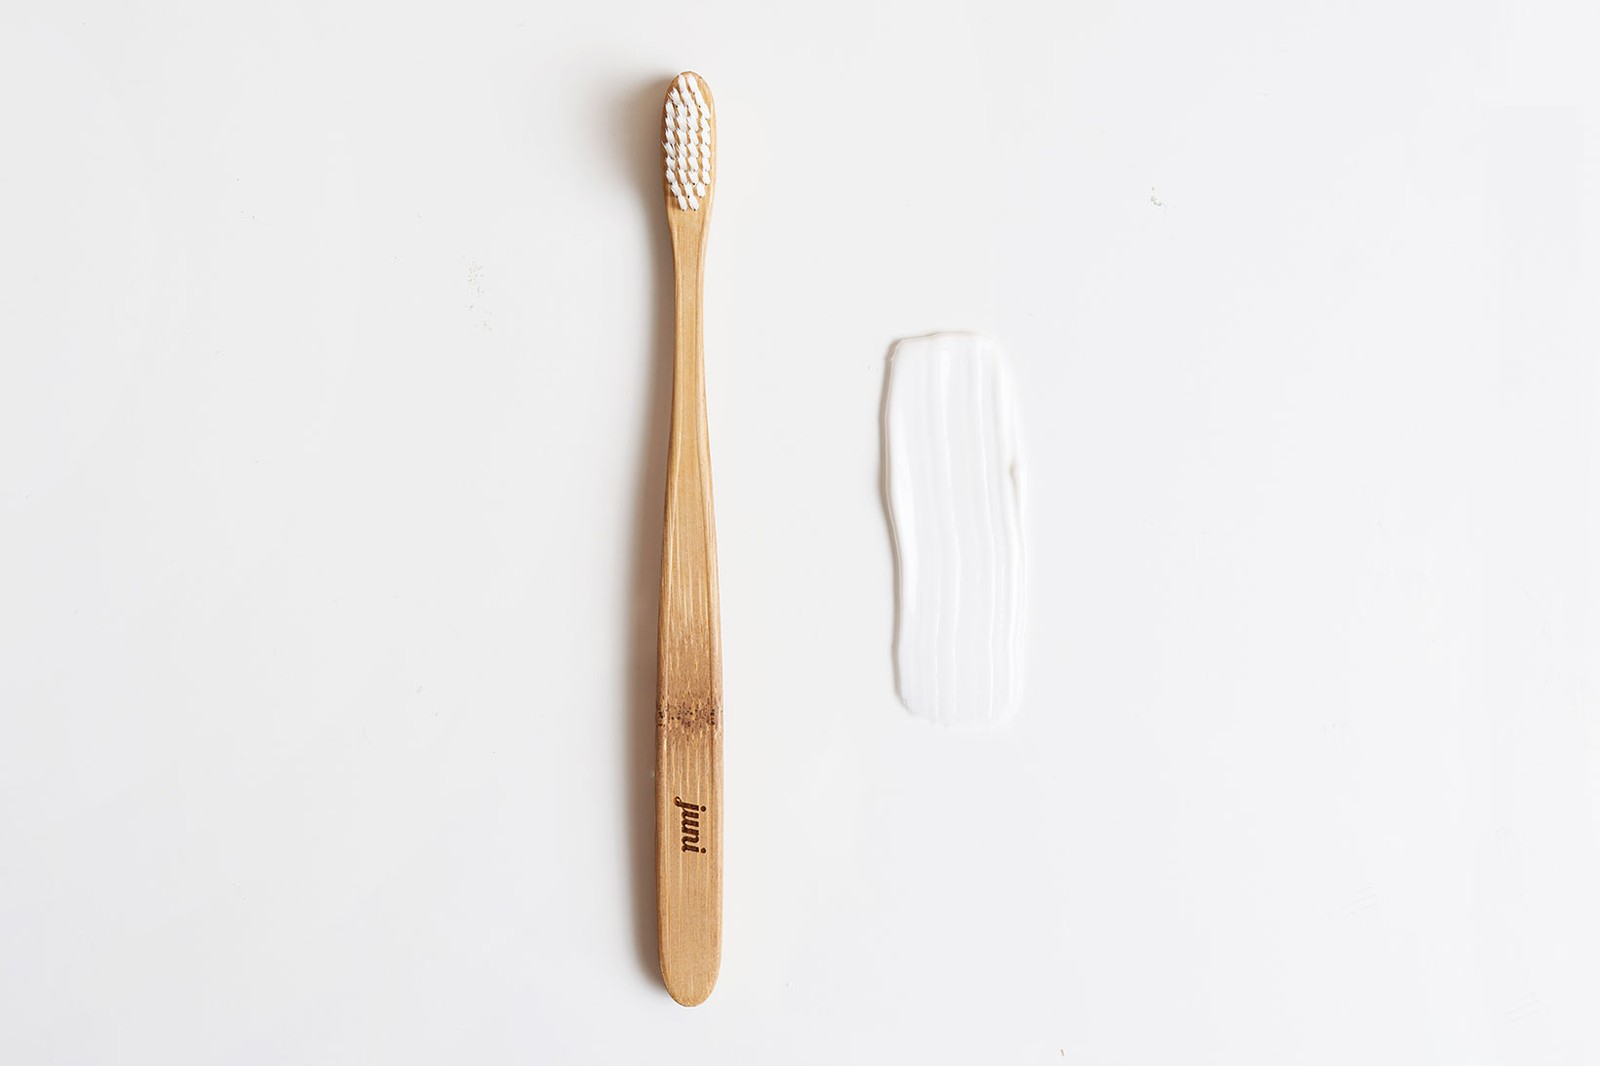 eco-friendly sustainable zero waste plastic free oral dental care hygiene bamboo toothbrush juni essentials